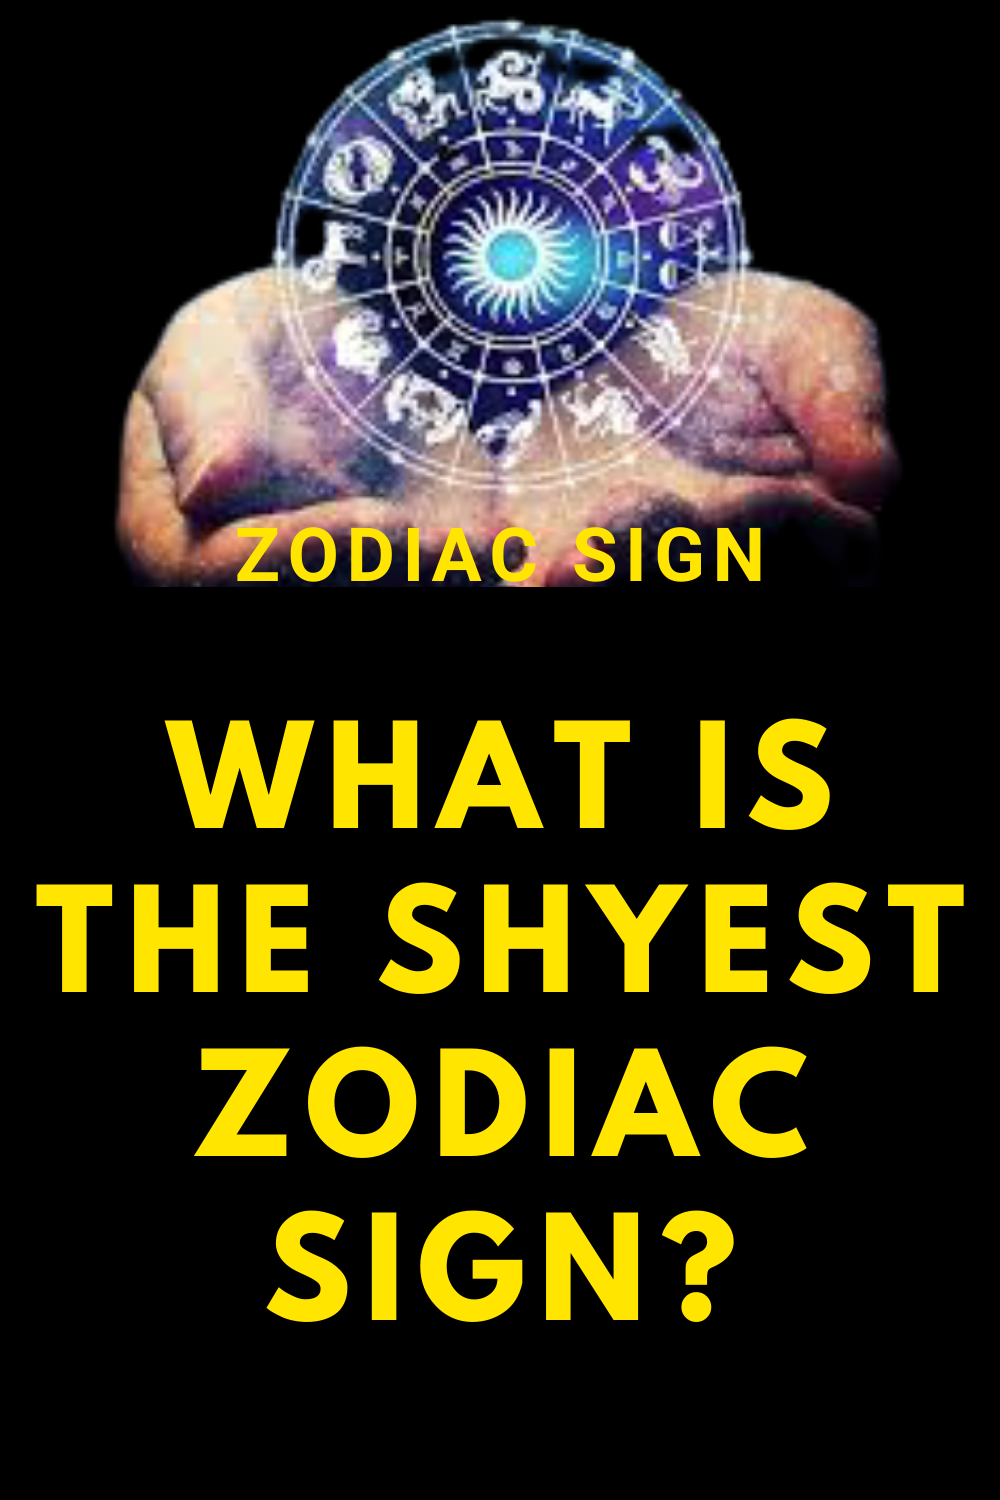 What is the shyest zodiac sign?